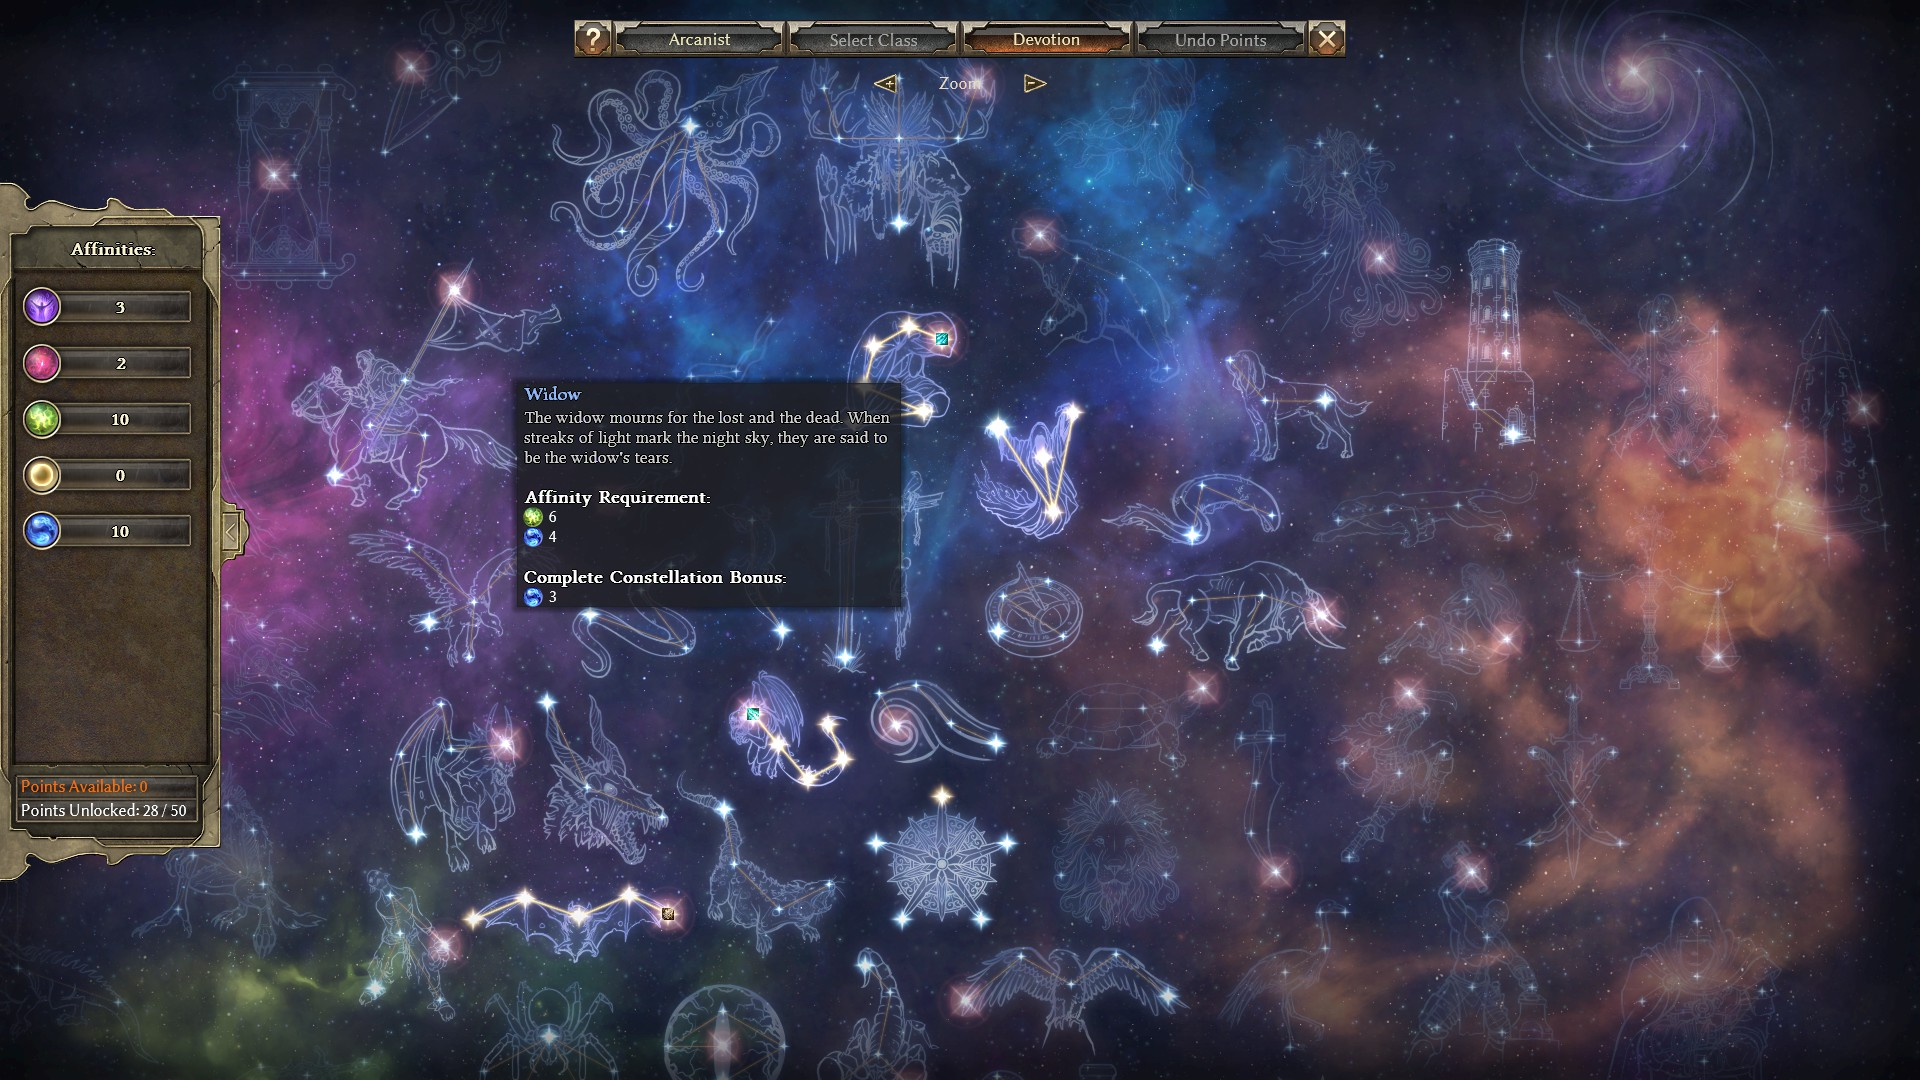 Steam Community :: Guide :: Pure Arcanist - Rise of the Aetherphoenix